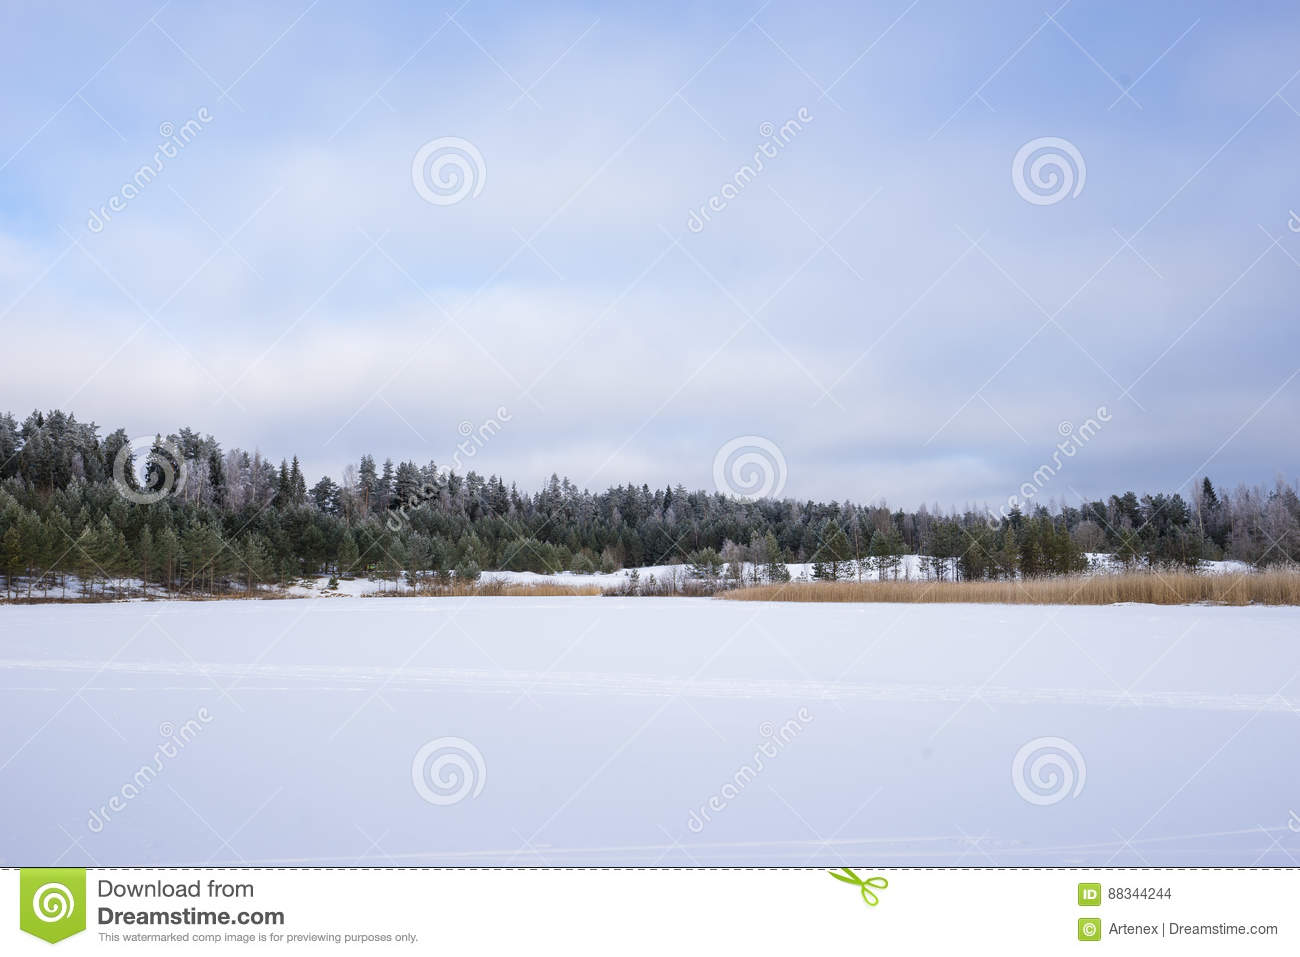 Winter in the lake. Icy cold forest. Frosty wood and ground. Freeze temperatures in nature. Snowy natural environment.